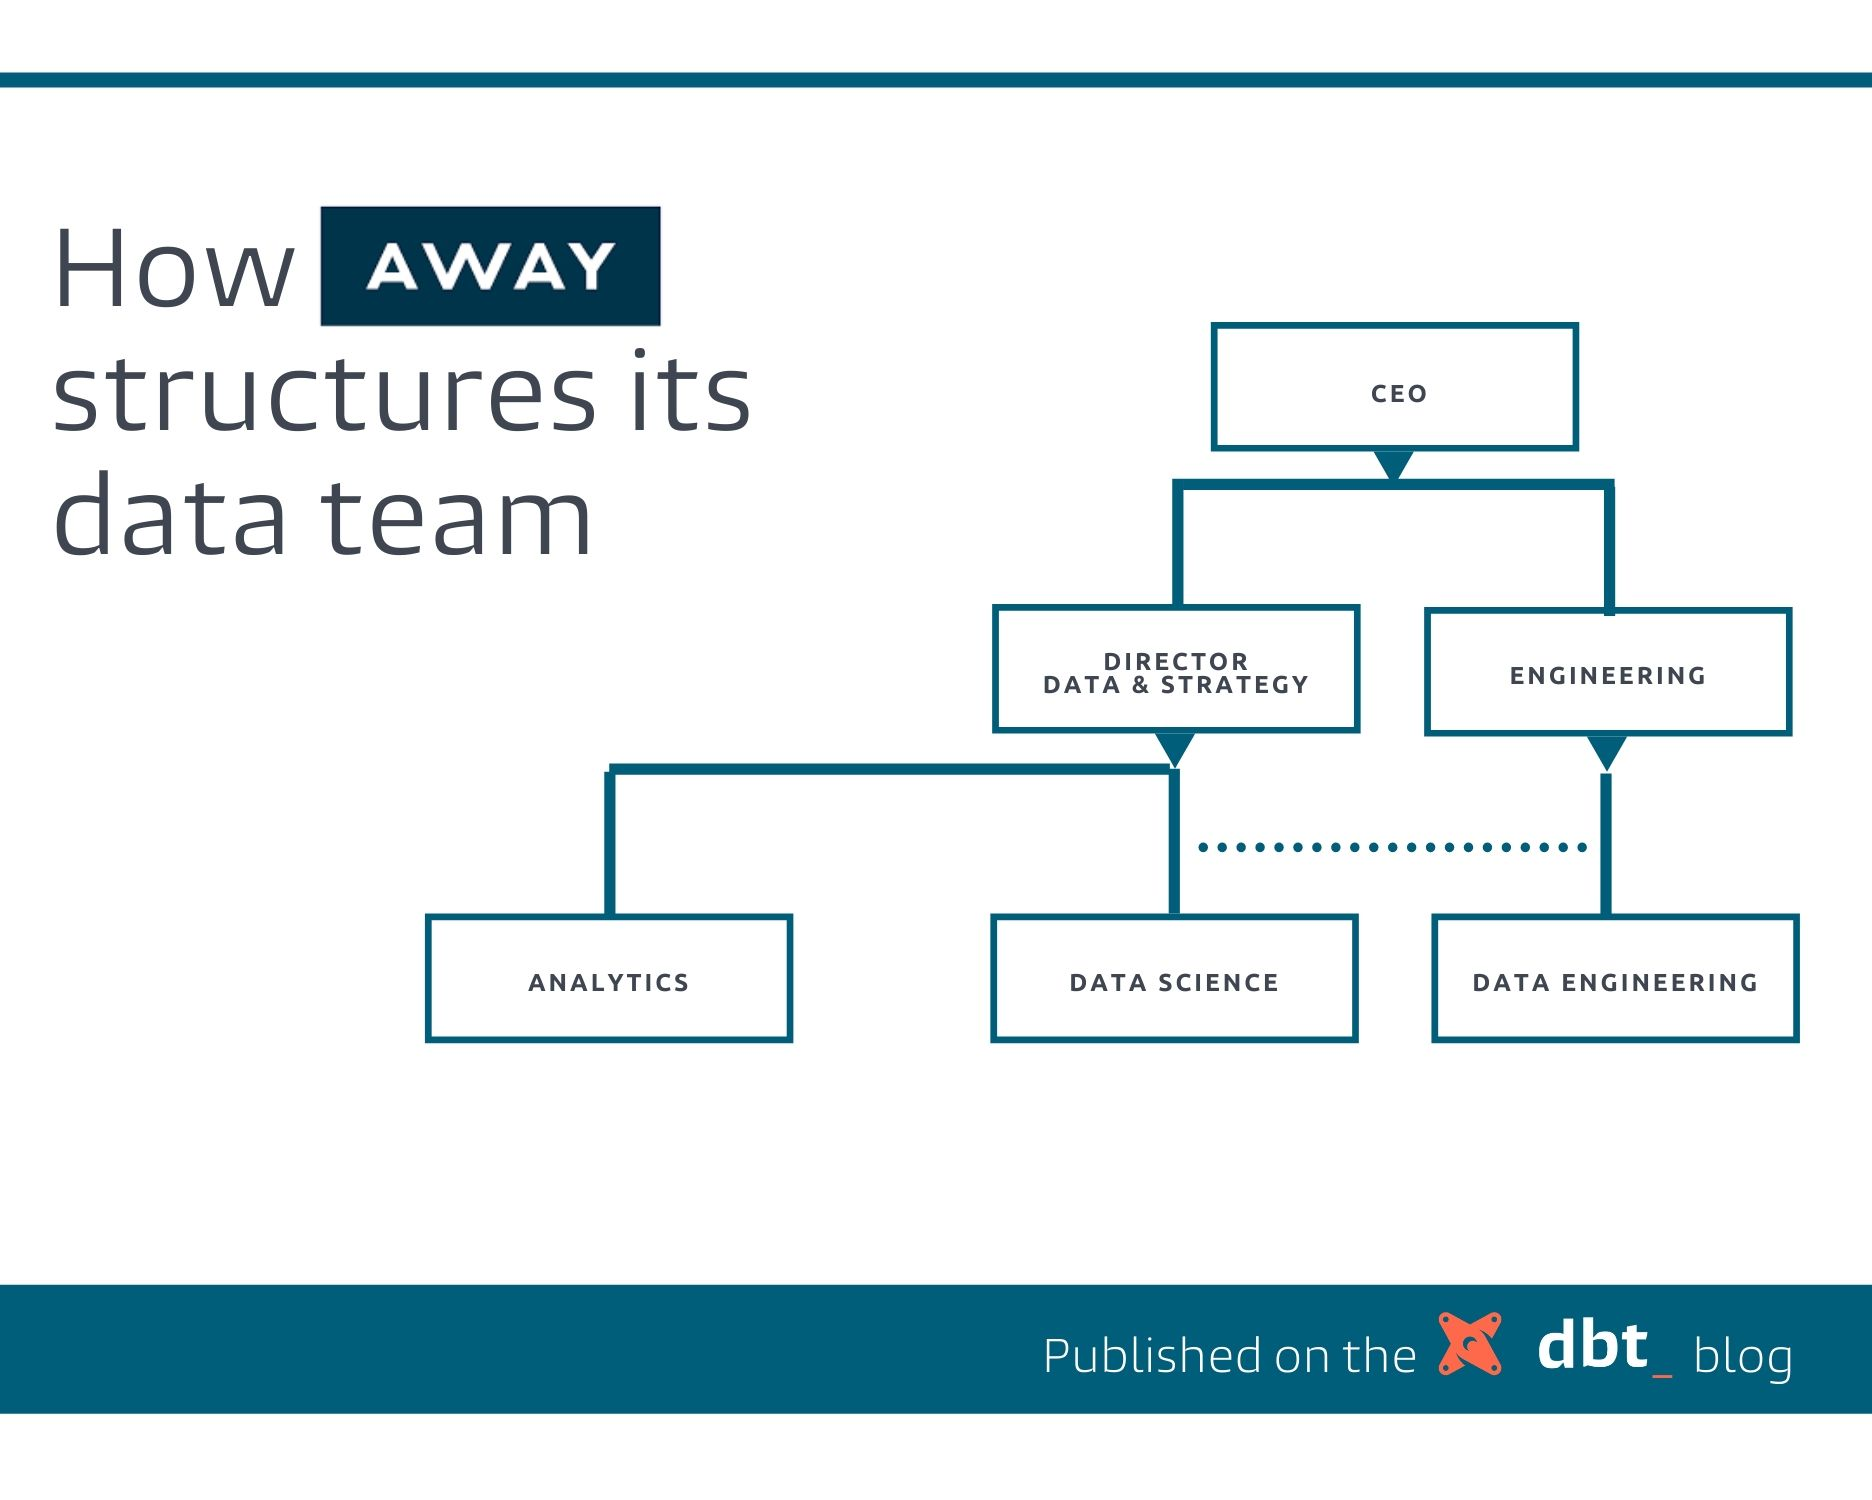 Away's data team org structure